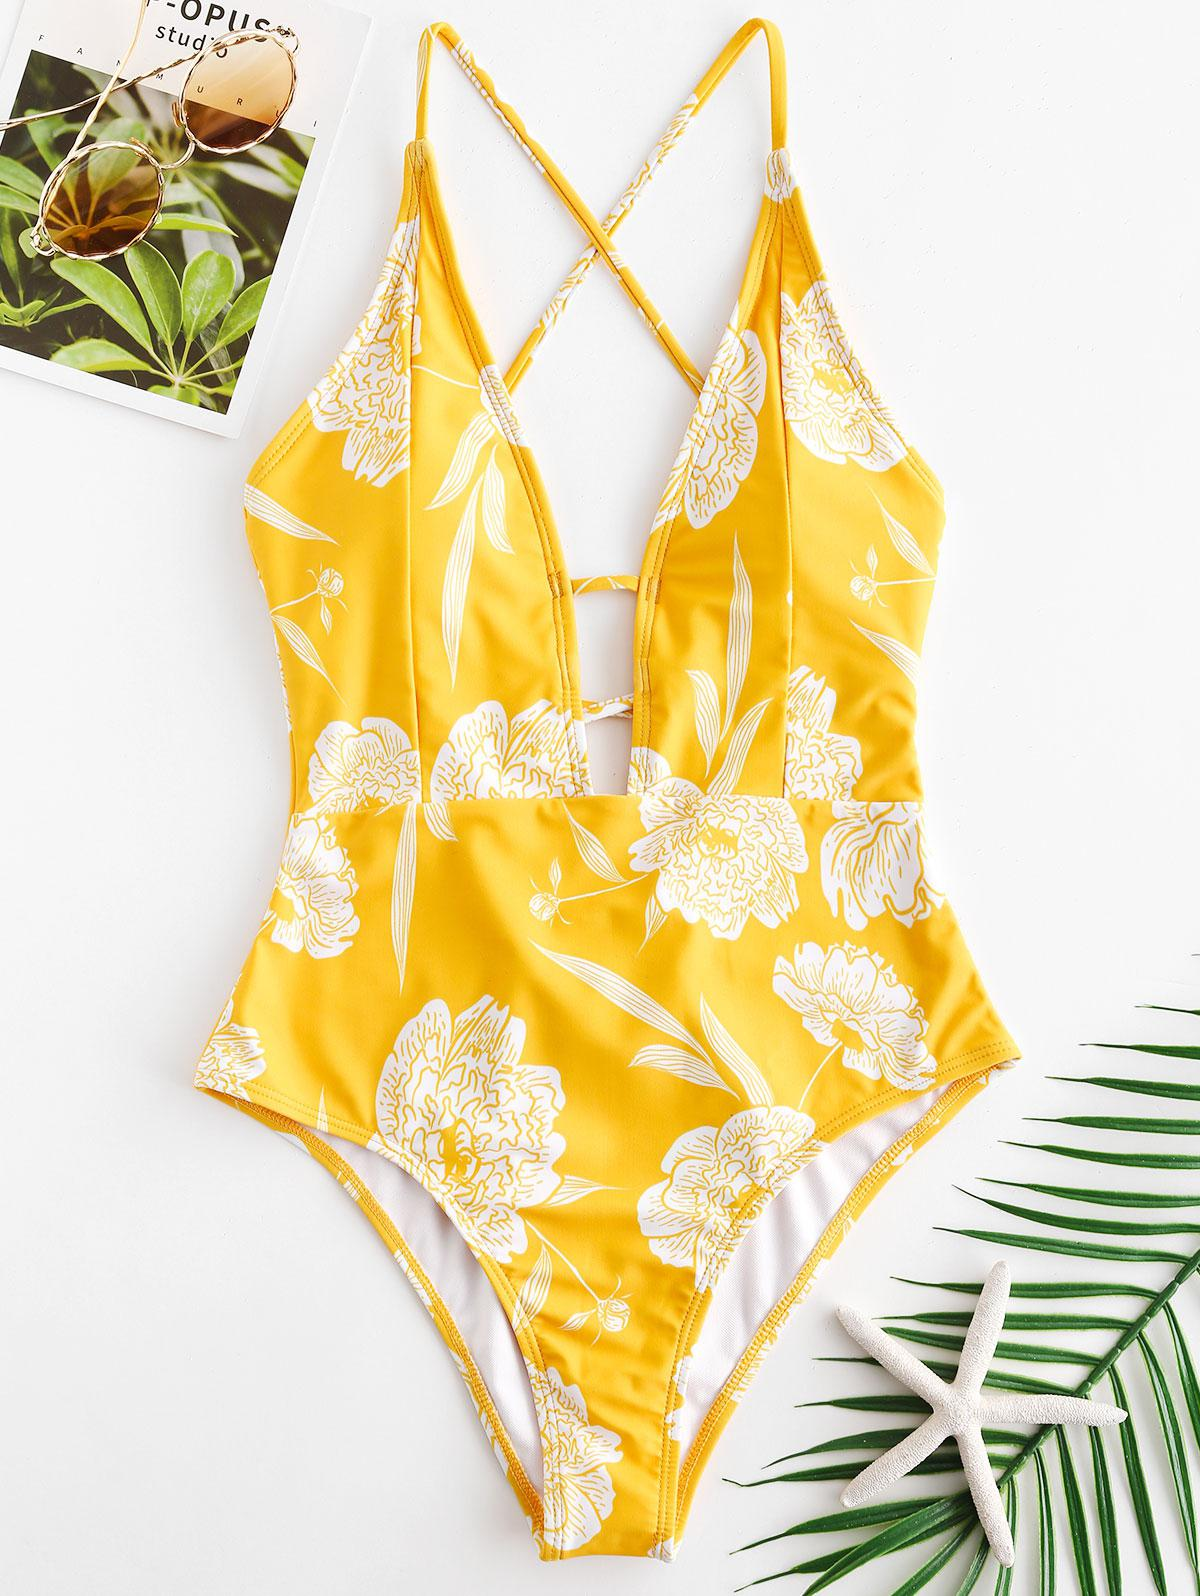 ZAFUL Flower Lace Up Backless Swimsuit, Rubber ducky yellow